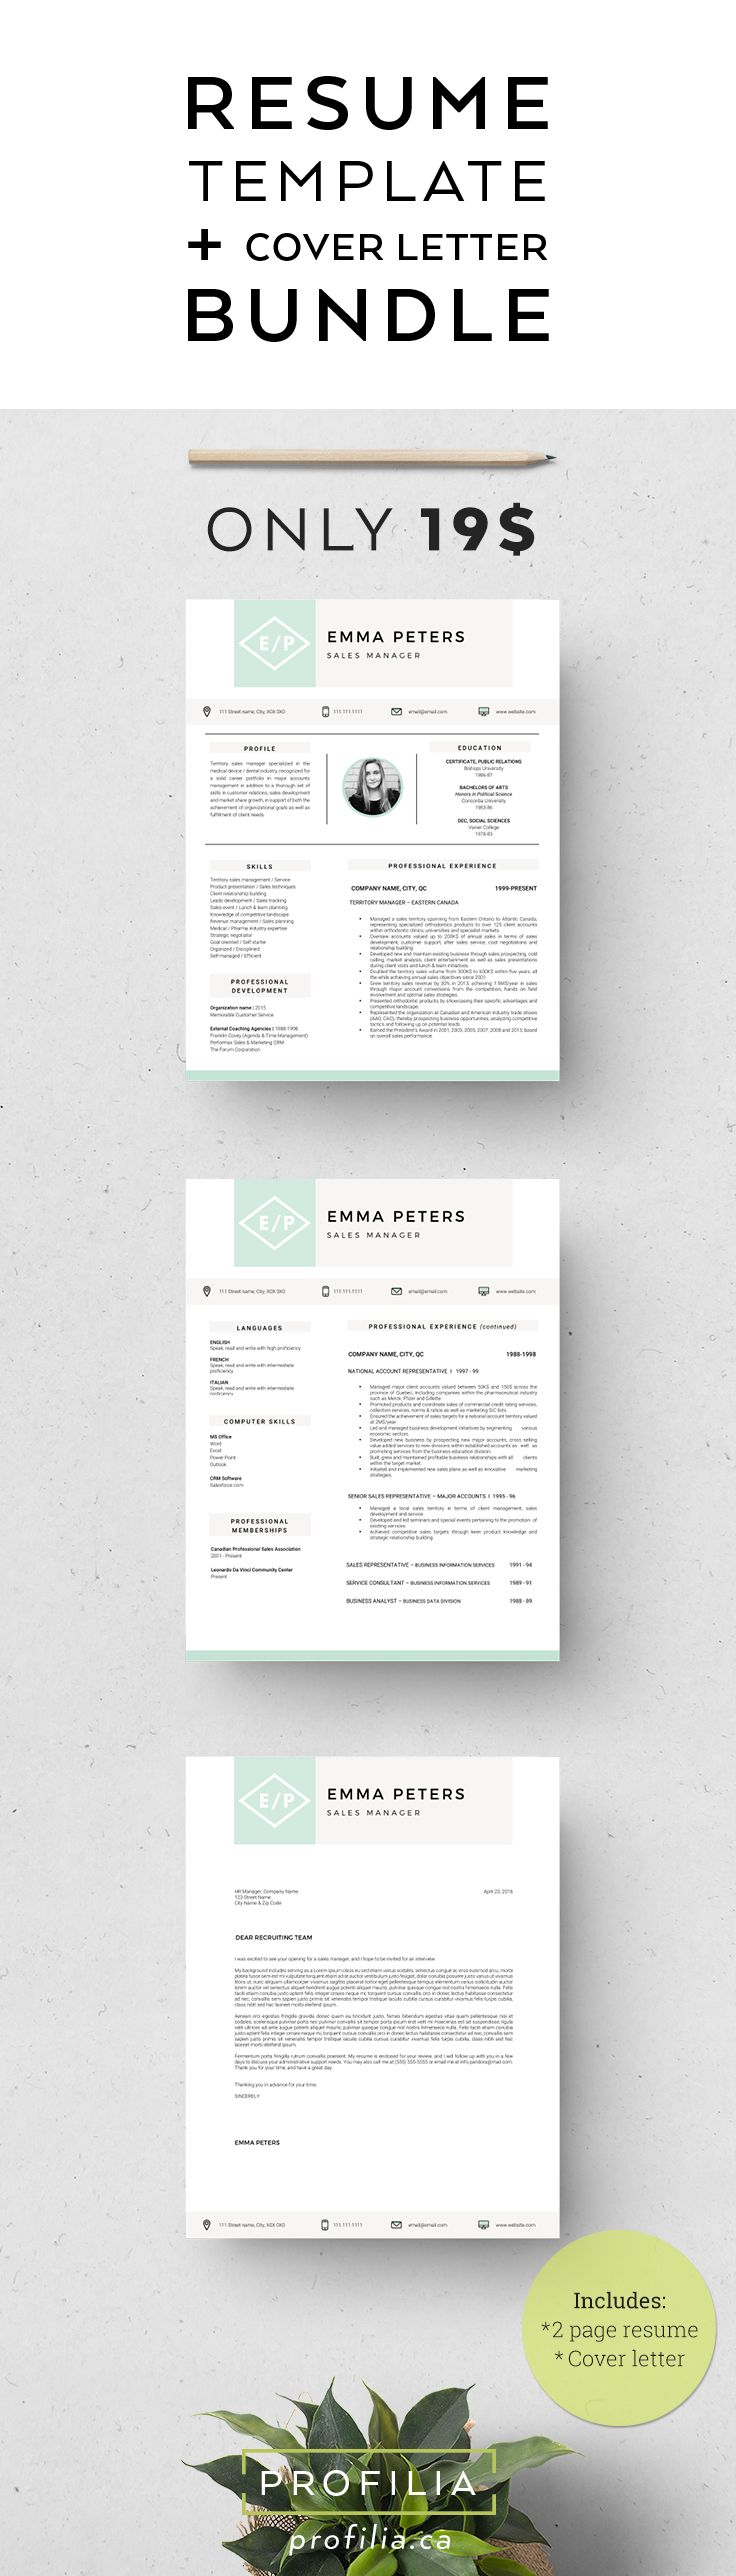 modern resume cover letter template 3 page bundle with fonts